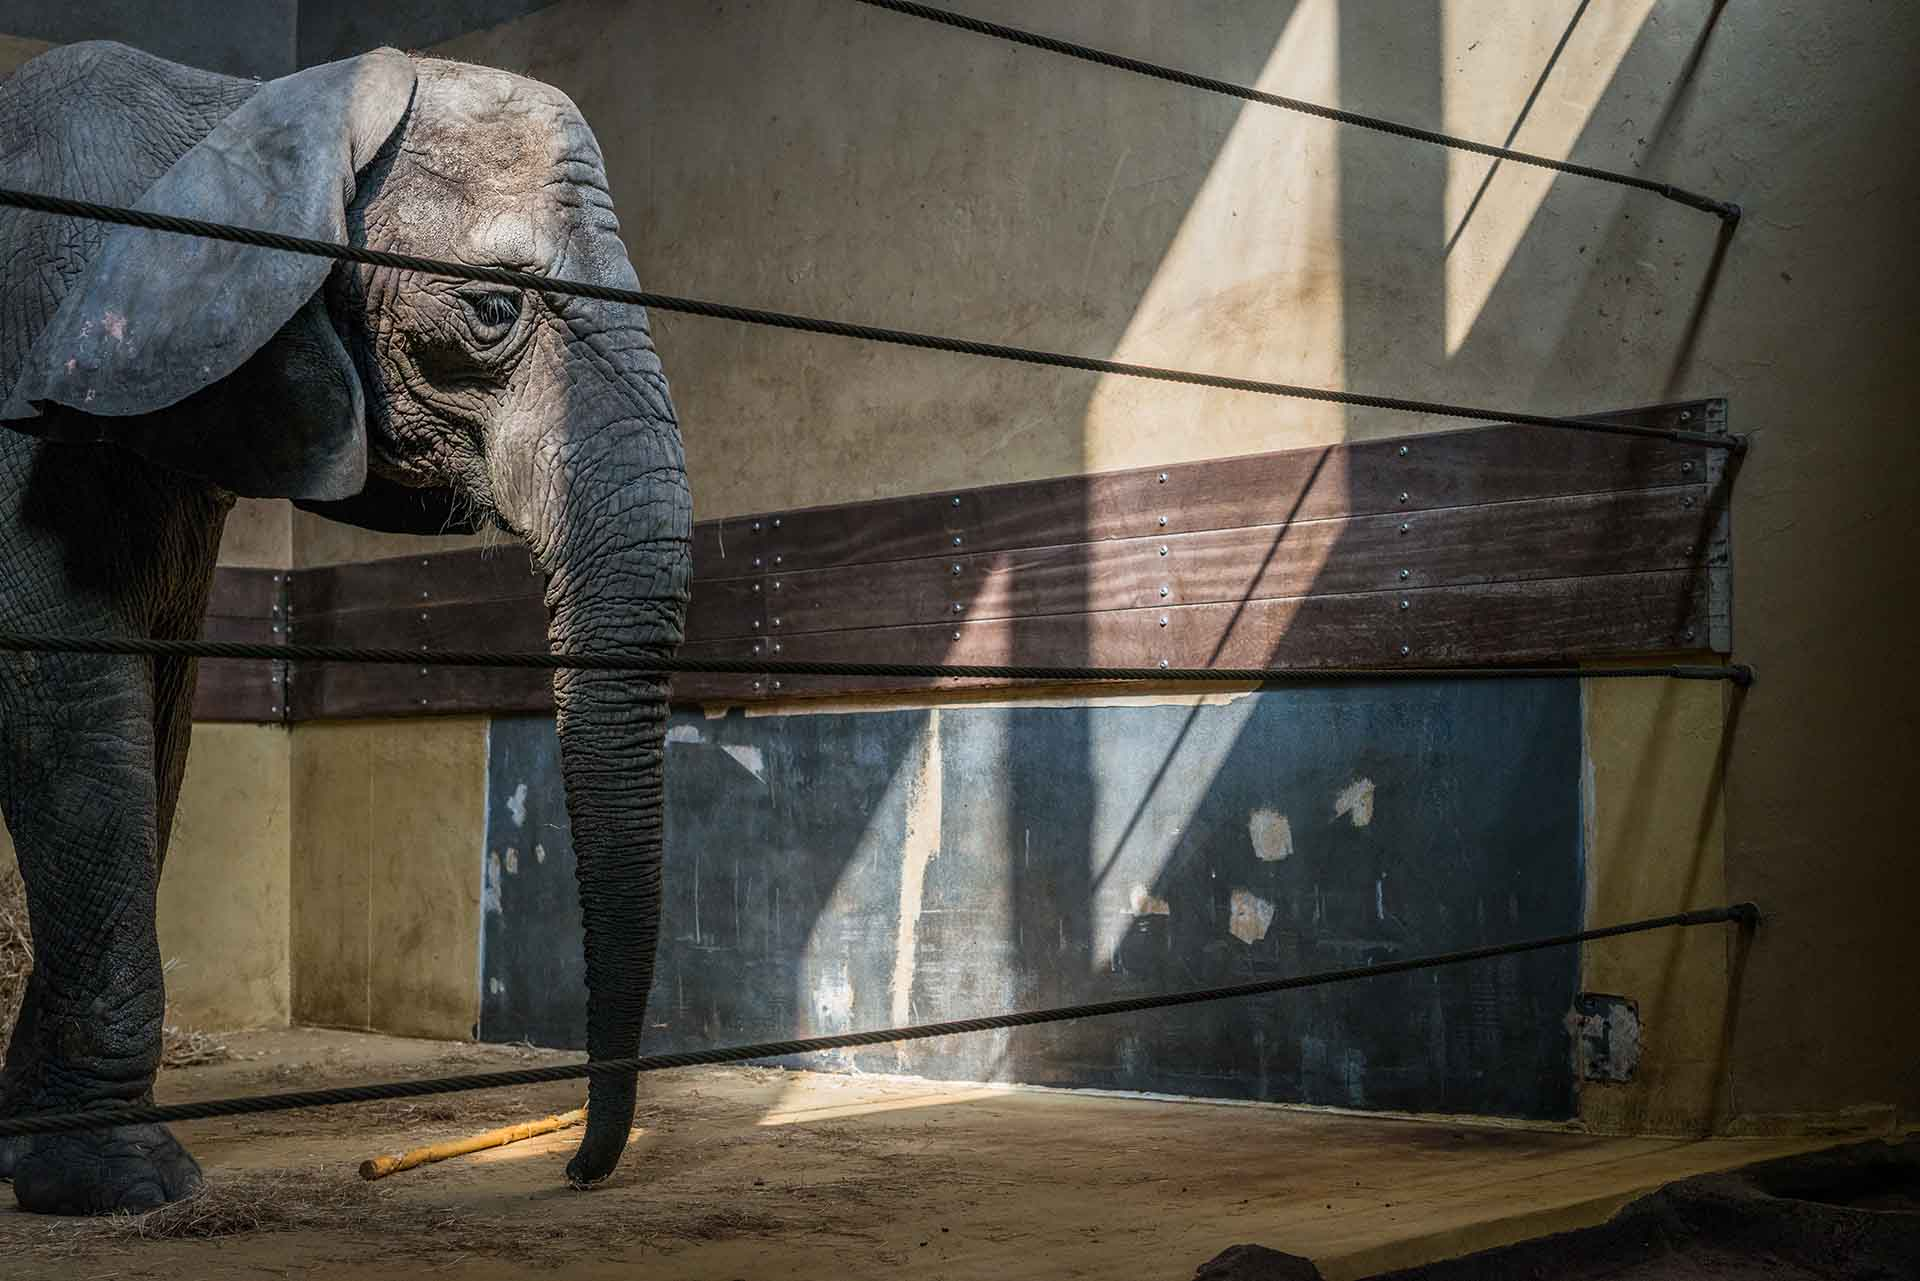 African Elephant At A Zoo In Denmark